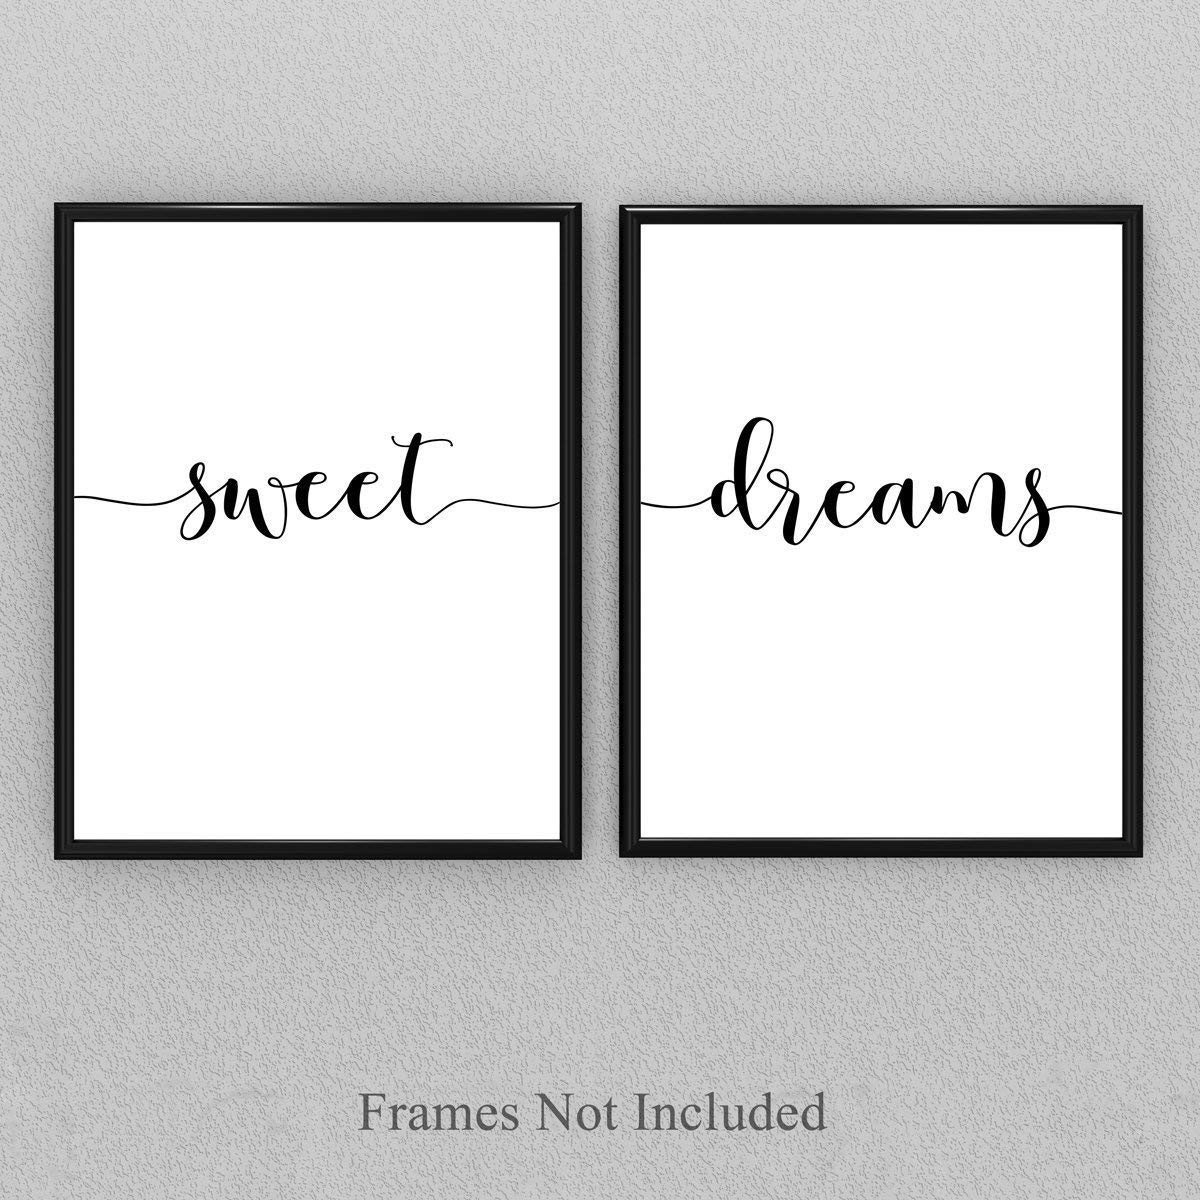 Sweet Dreams - Set of Two 11x14 Unframed Typography Art Prints - Great Gift for Bedroom Decor